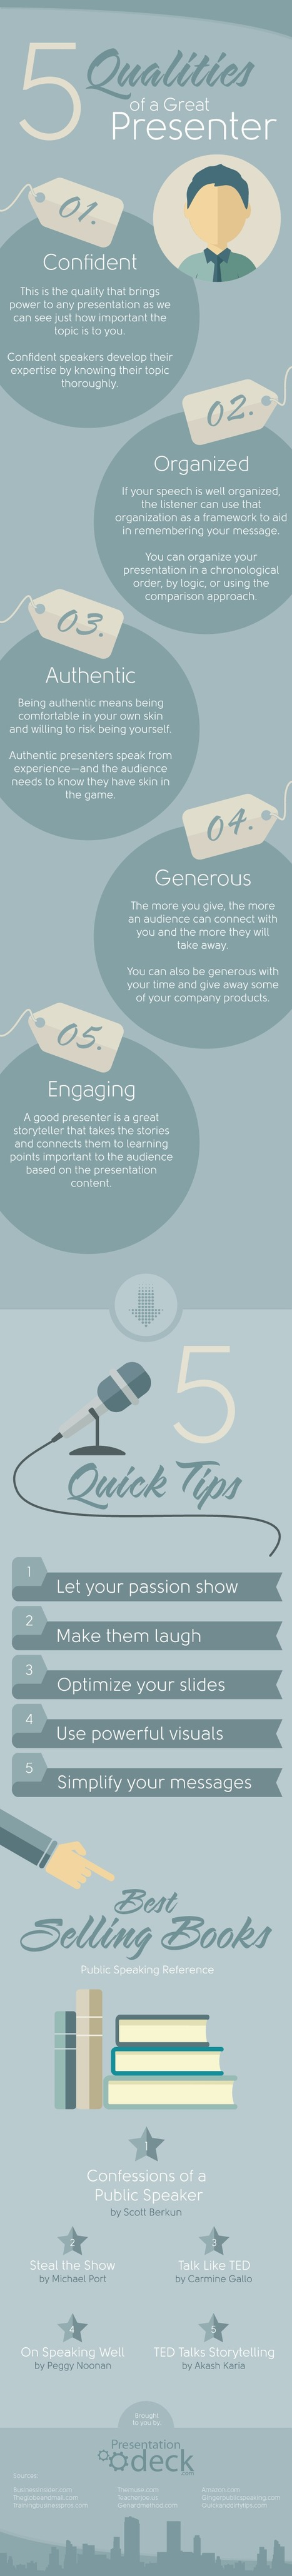 5 Qualities of a Great Presenter Infographic - e-Learning Infographics | Pedalogica: educación y TIC | Scoop.it